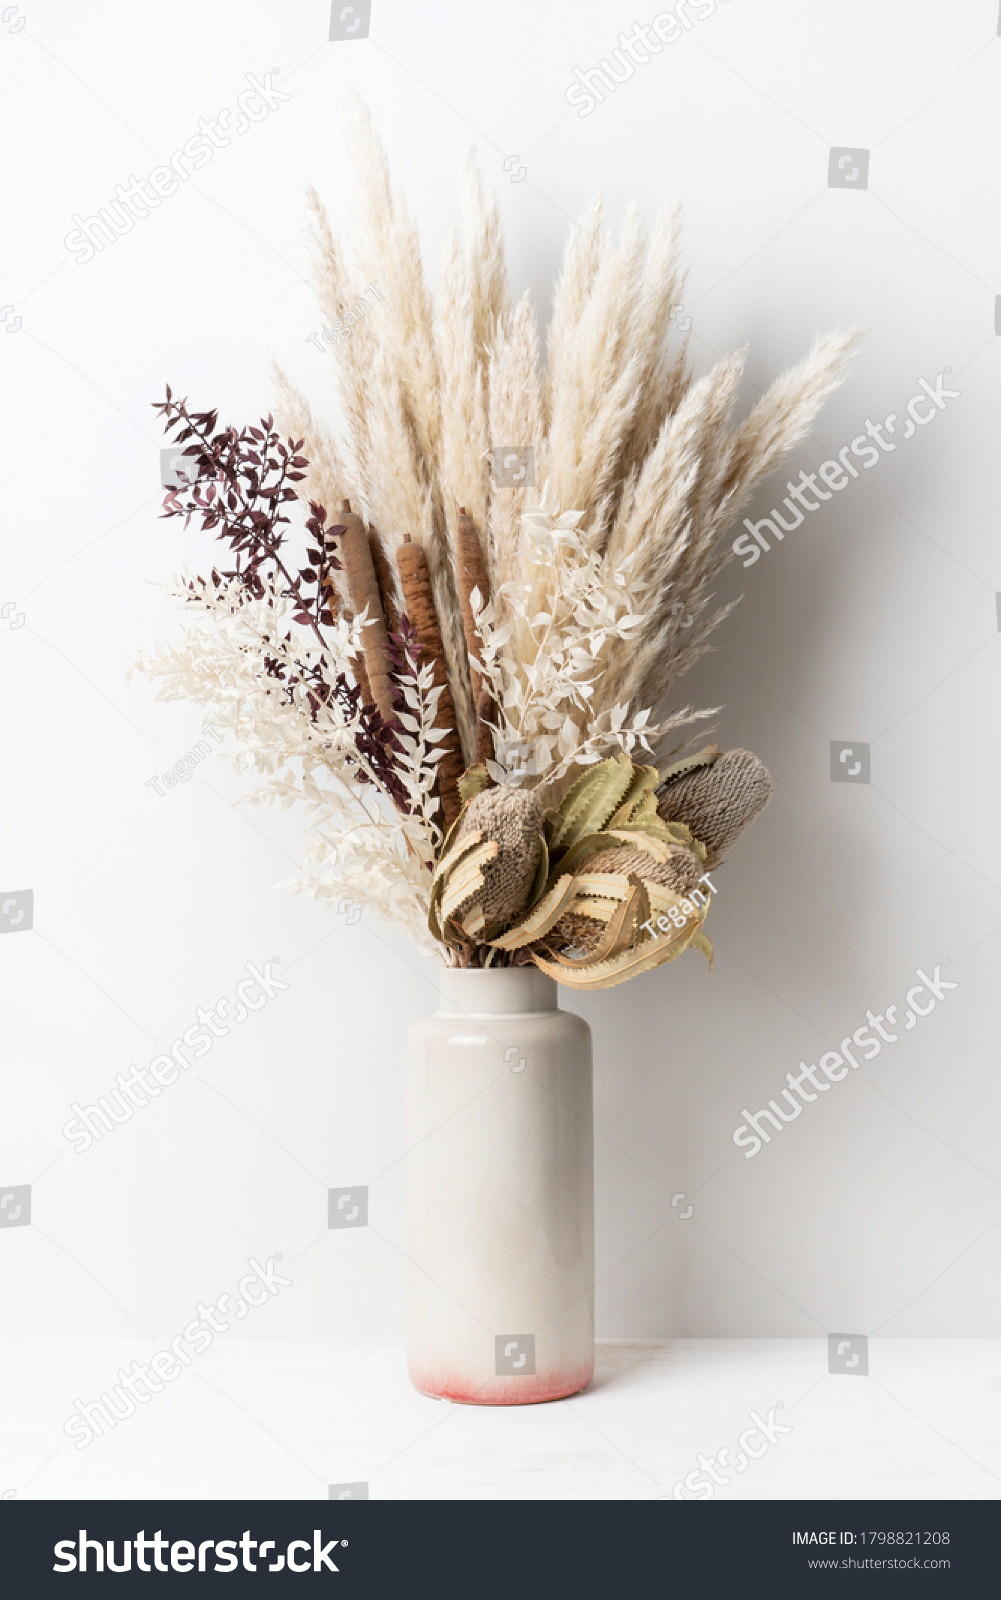 Stylish modern dried flower arrangement in a cream and pink vase. Including Banksia, pampas grass, bulrush and ruscus leaves. Art decoBoho gift for Anniversary, birthday, mothers day. #1798821208